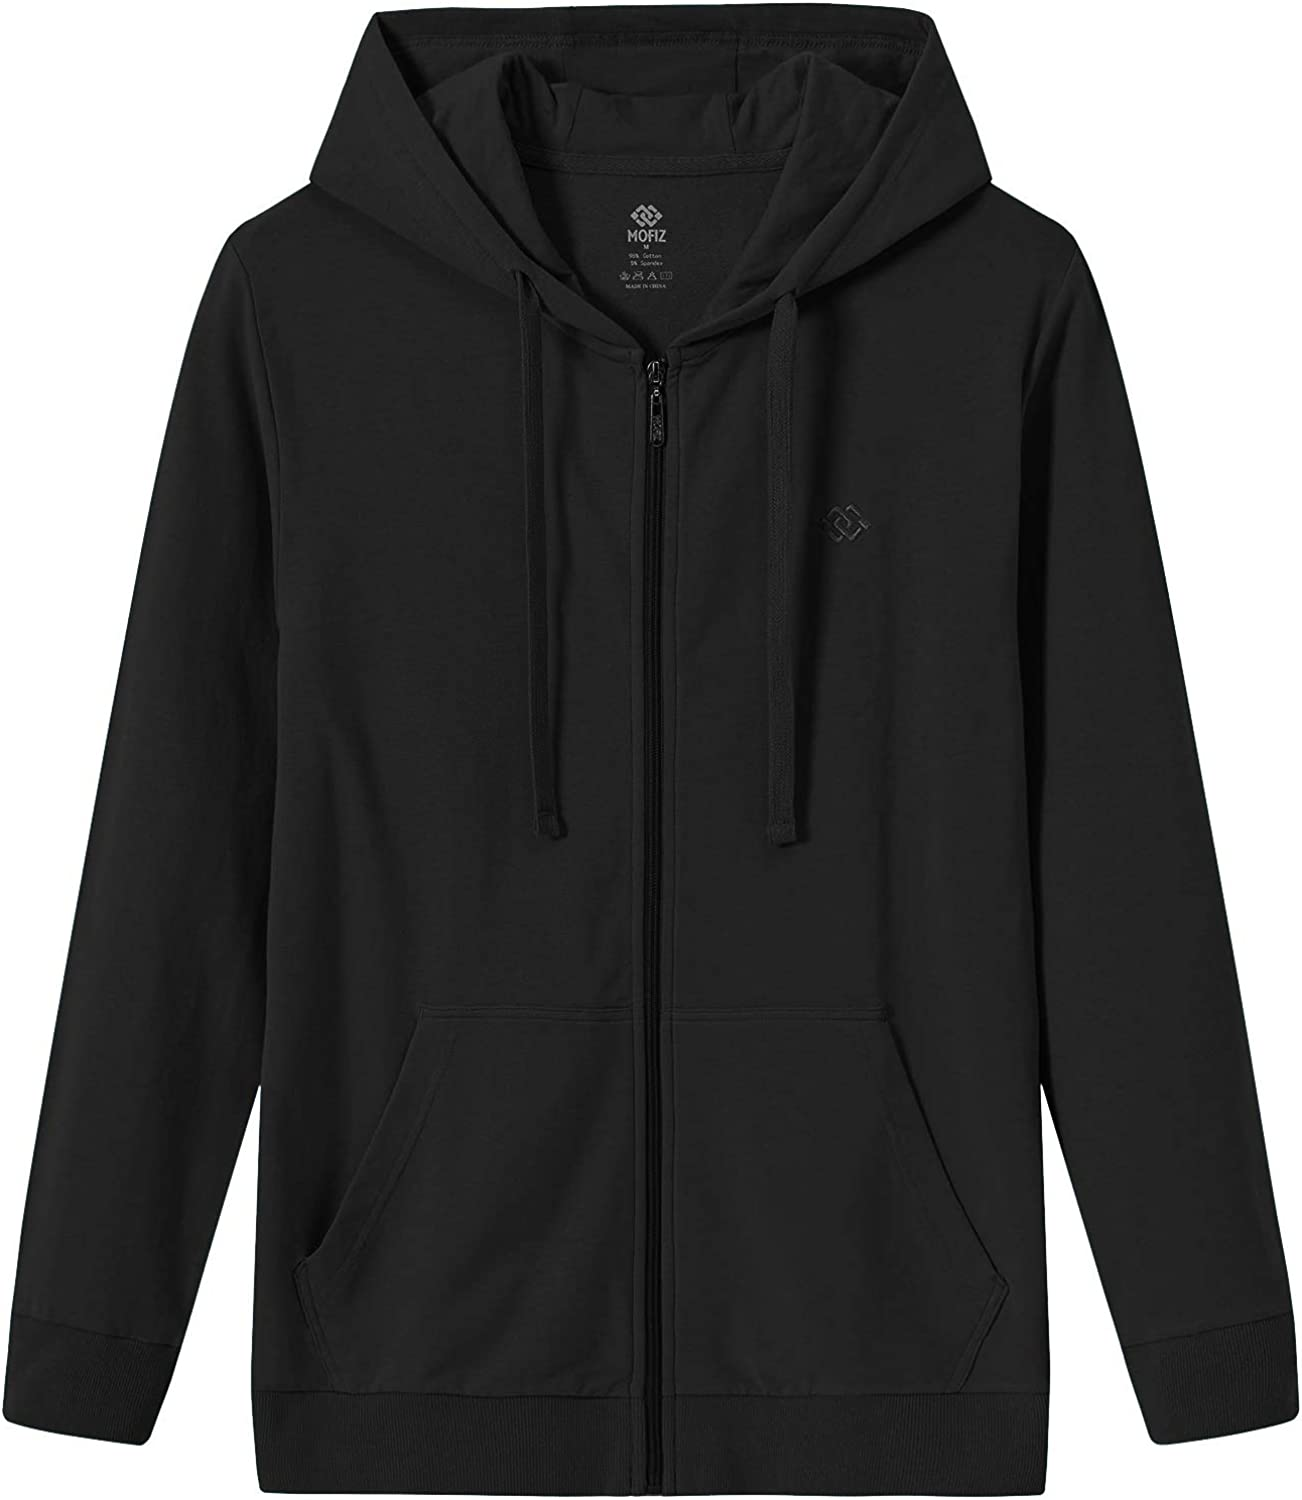 JINSHI Special Campaign Full-Zip Hooded for Men Sleeve Lightweight supreme Long Sports Sw